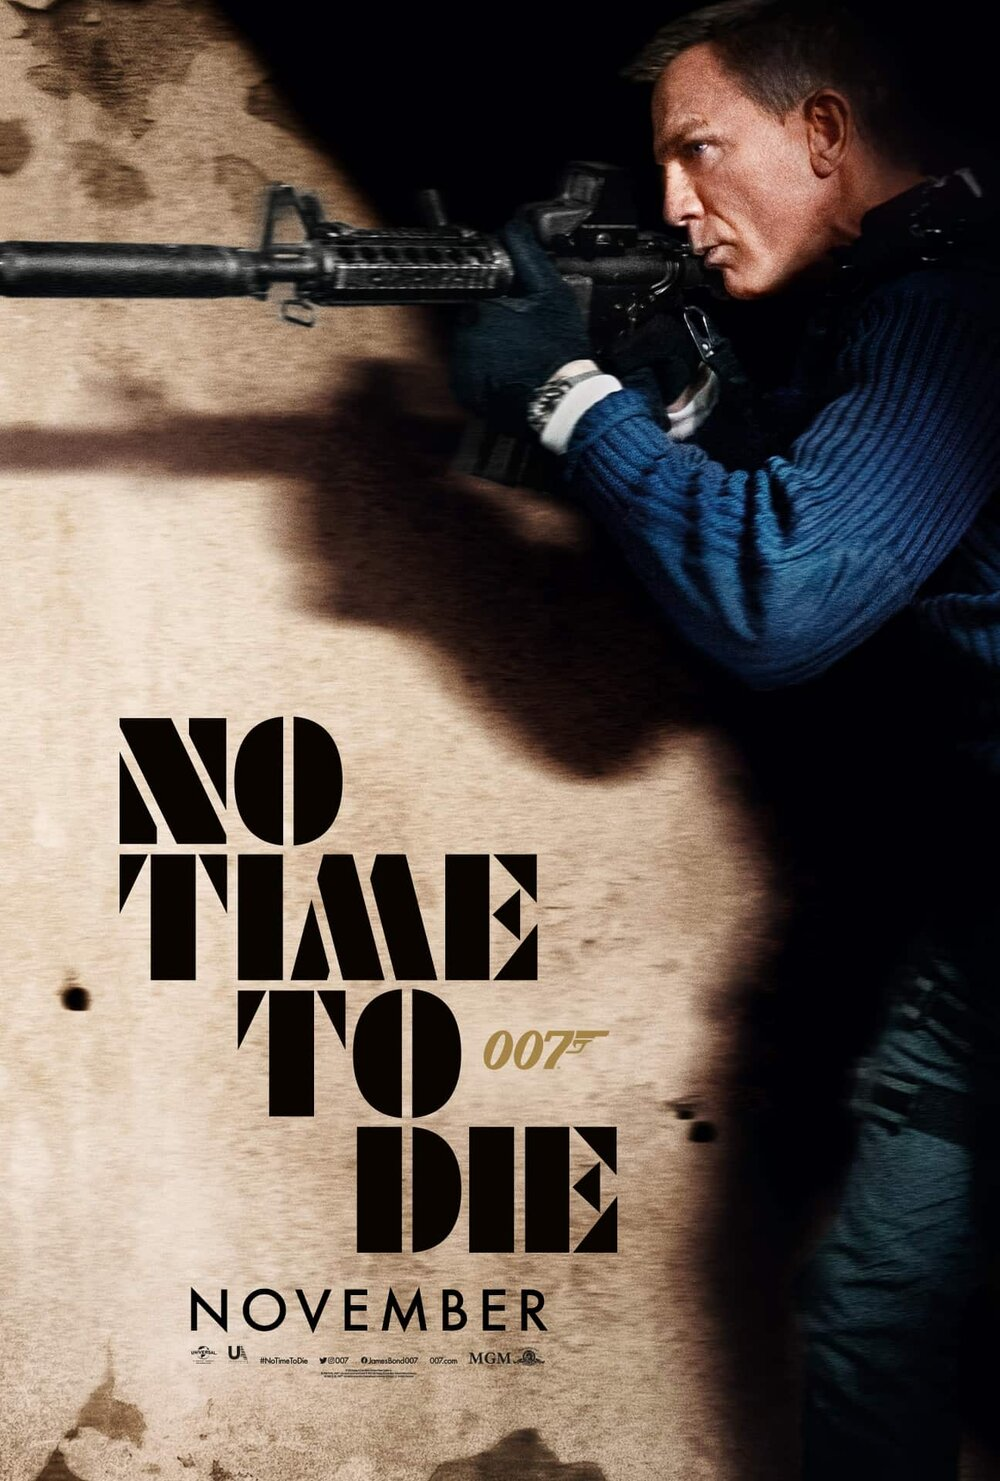 new-poster-for-now-time-to-die-confirms-that-it-will-still-be-released-in-november4